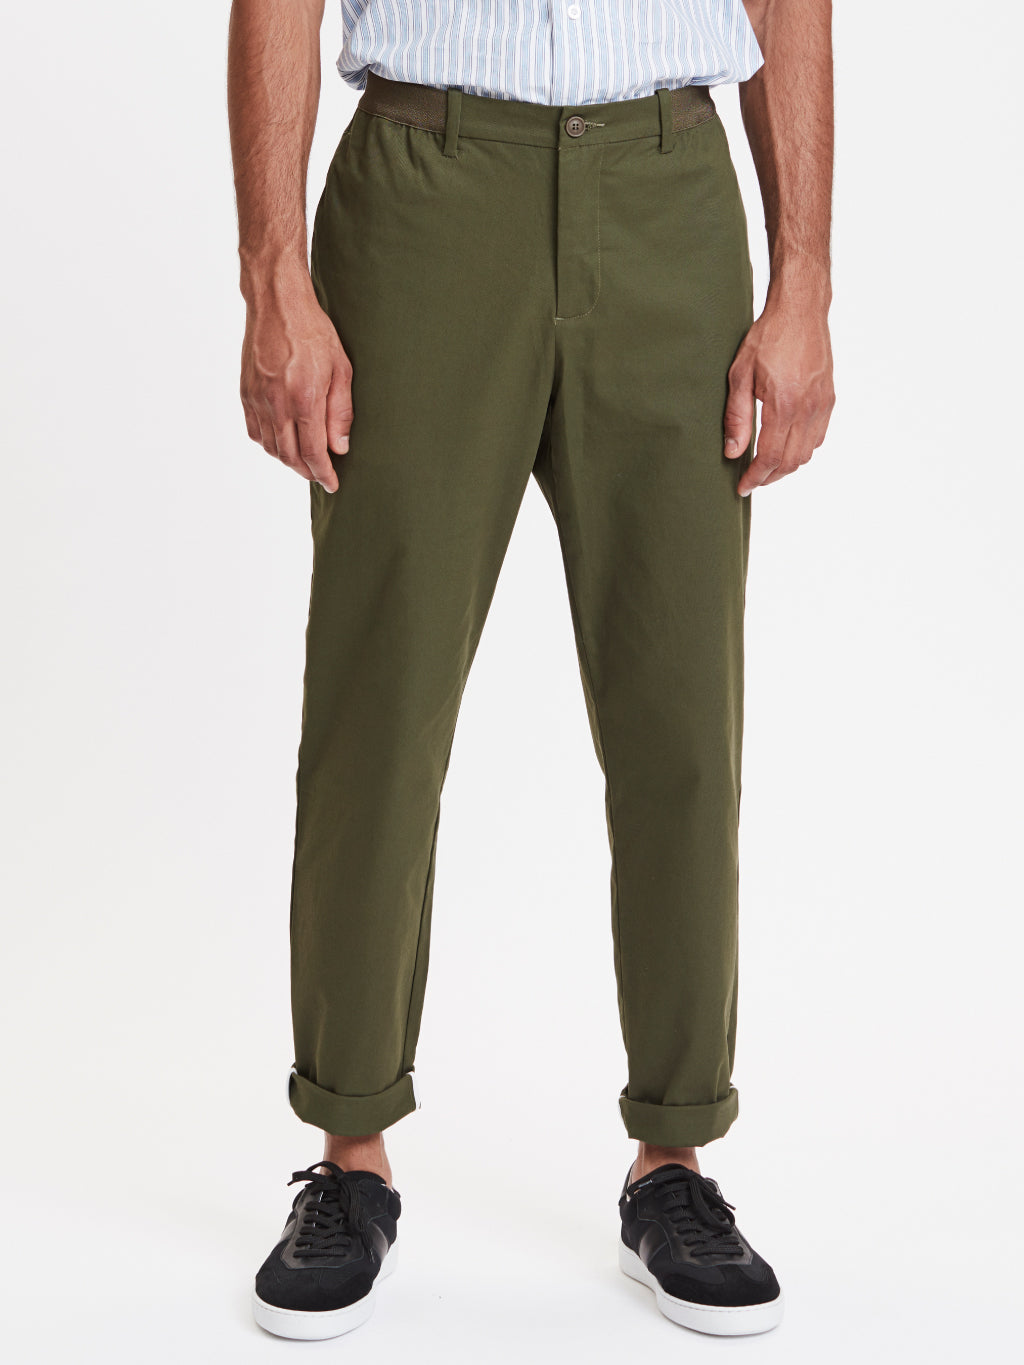 Century Trousers | Olive